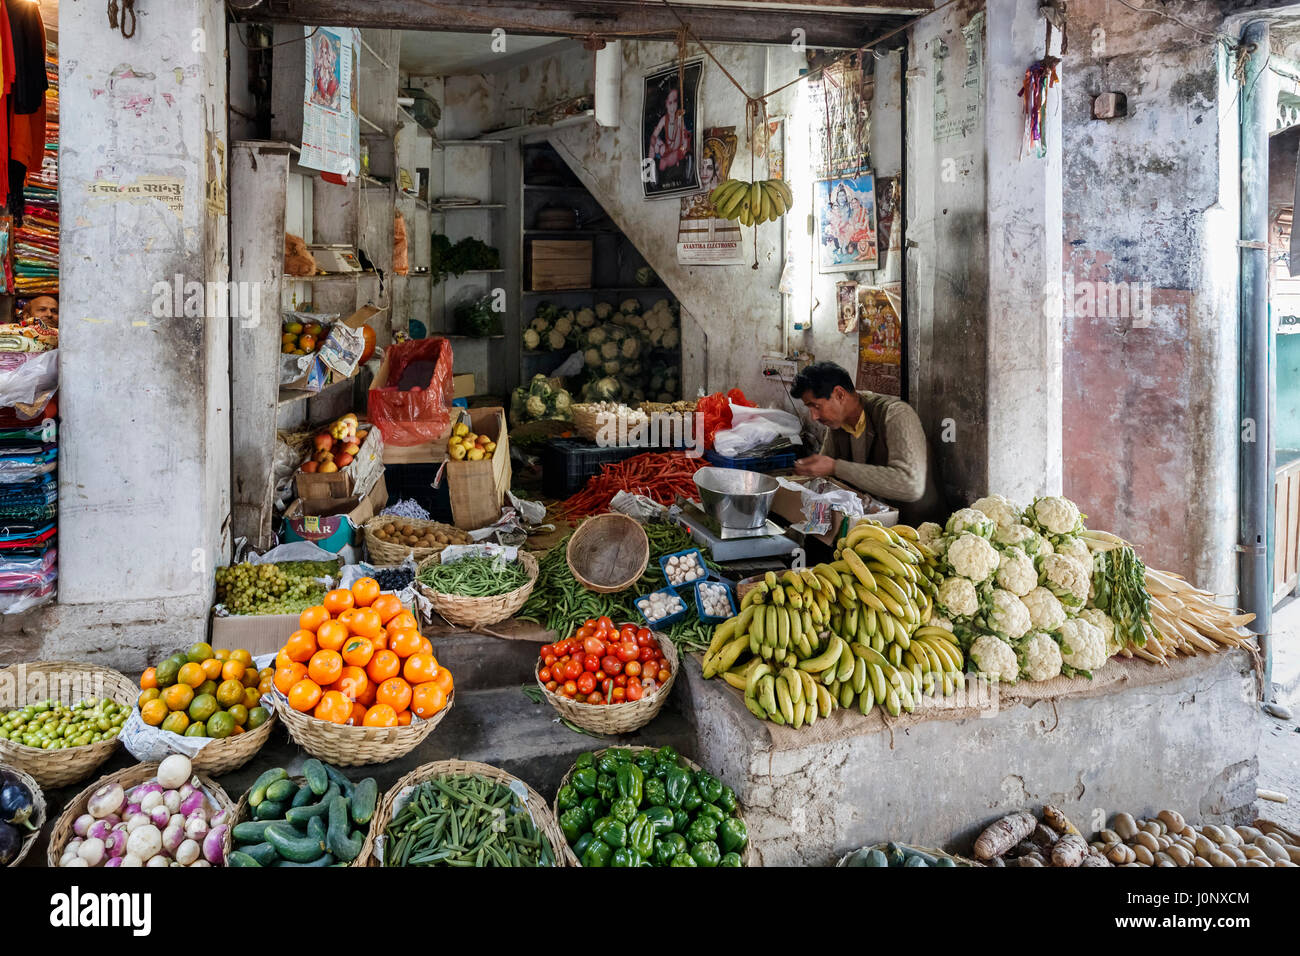 Fruit and vegetables on display outside a greengrocery shop in Pragpur, a heritage village in Kagra district, Himachal - Stock Image